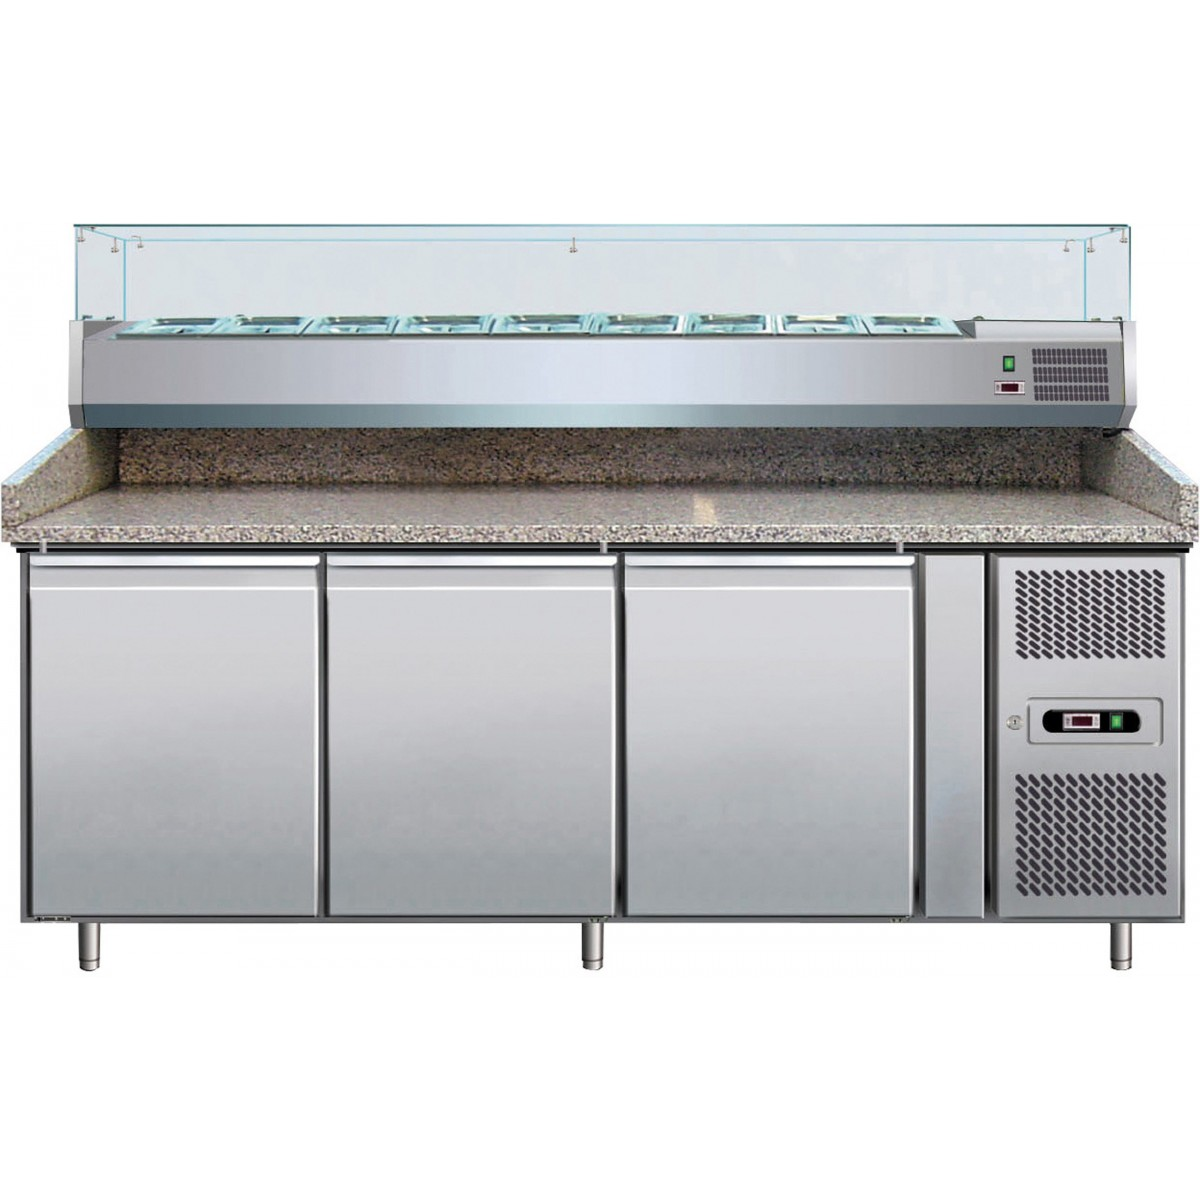 Destockage noz industrie alimentaire france paris for Sonde cuisine professionnel